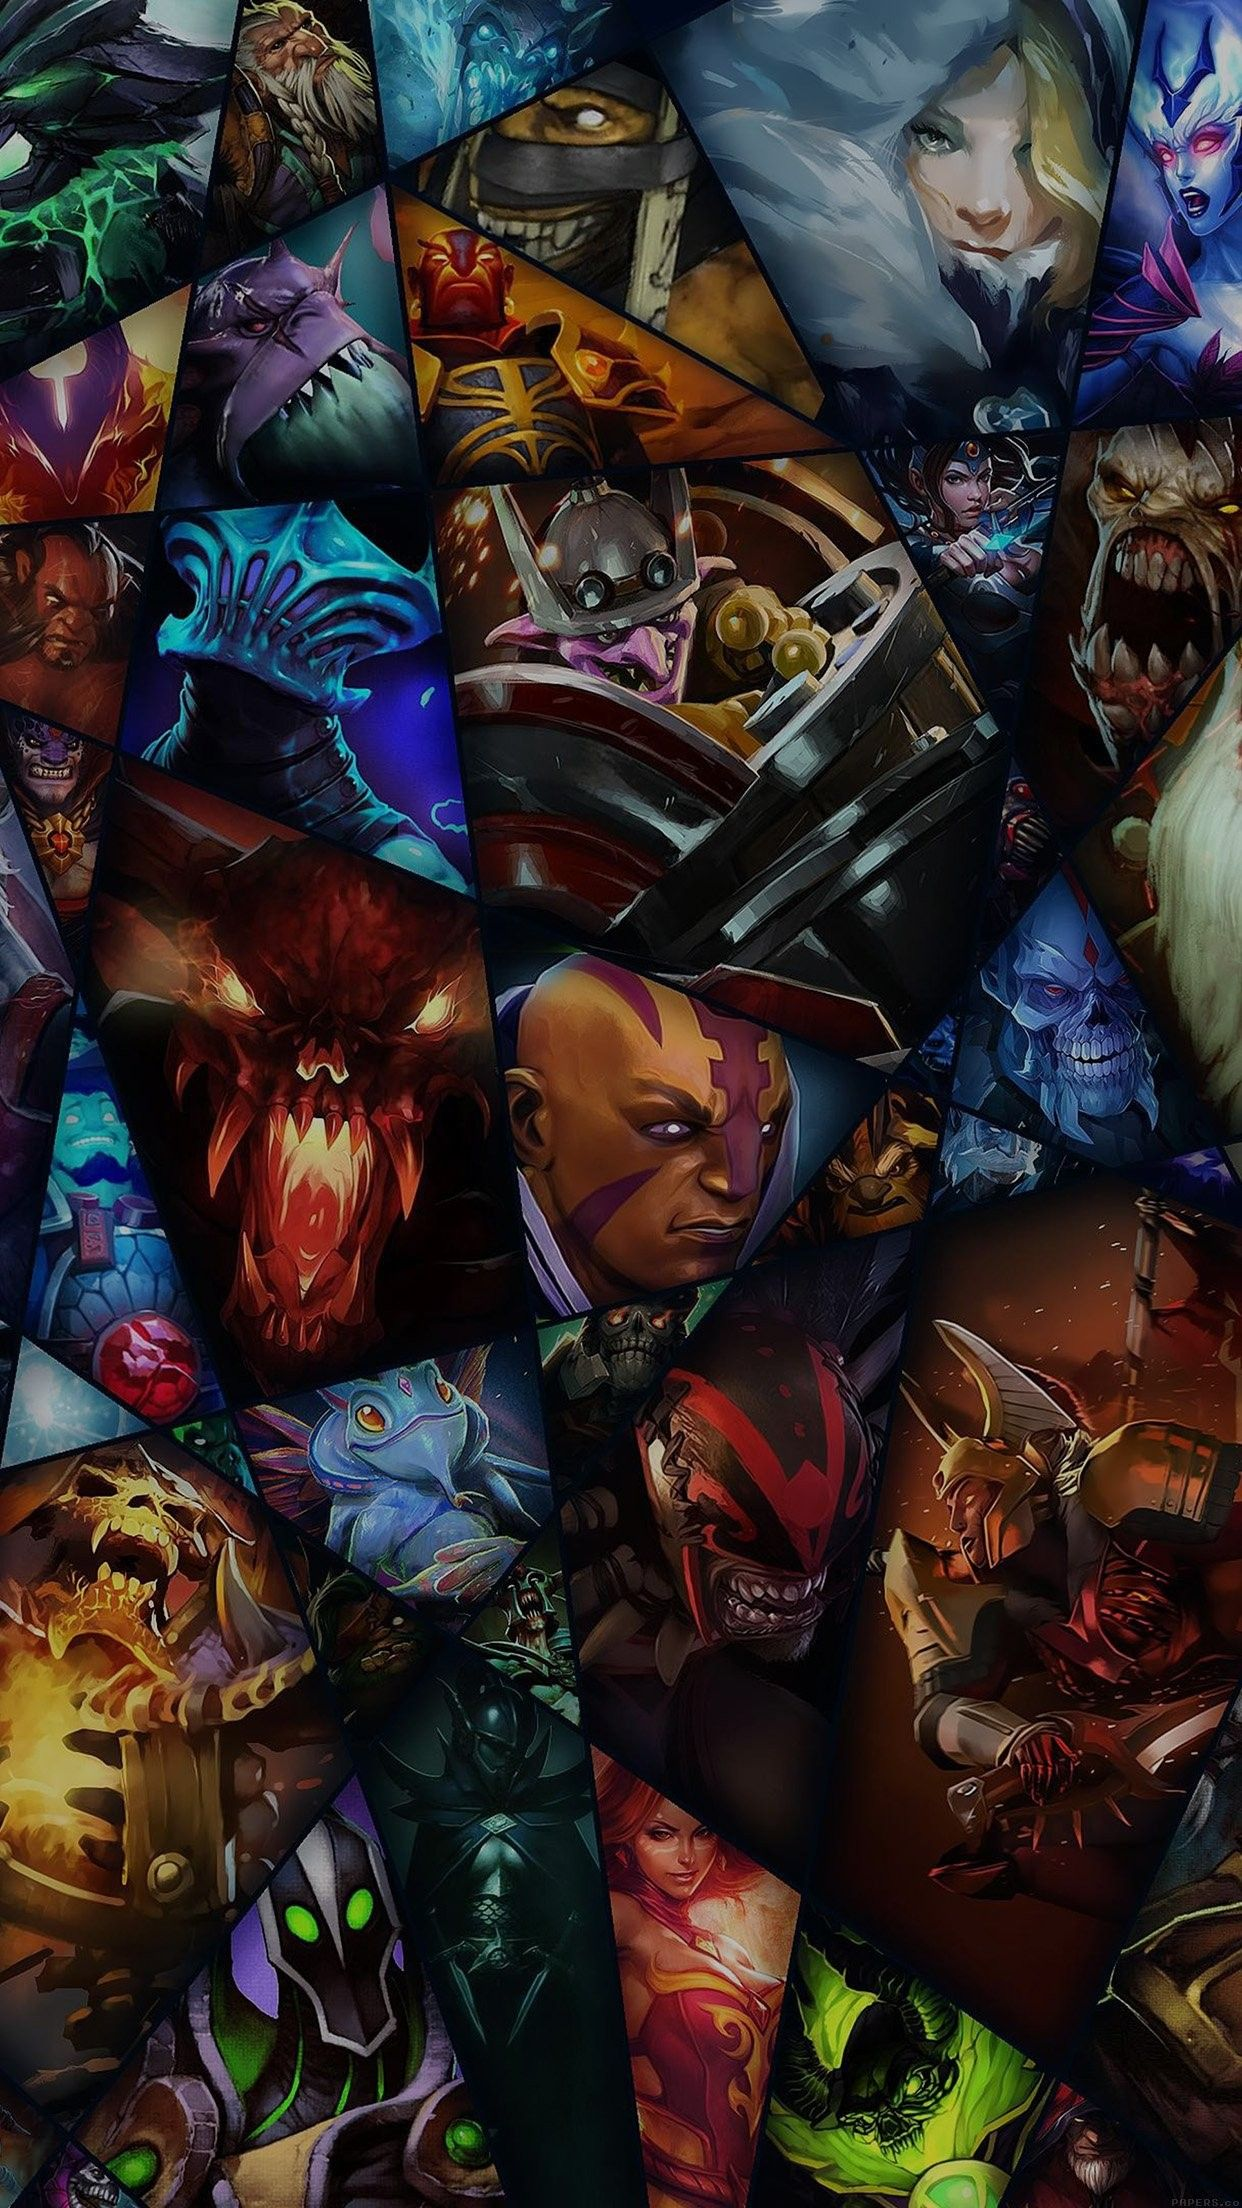 Dota 2 Heroes Wallpaper With Images Dota 2 Iphone Wallpaper Dota 2 Wallpapers Hd Hero Wallpaper